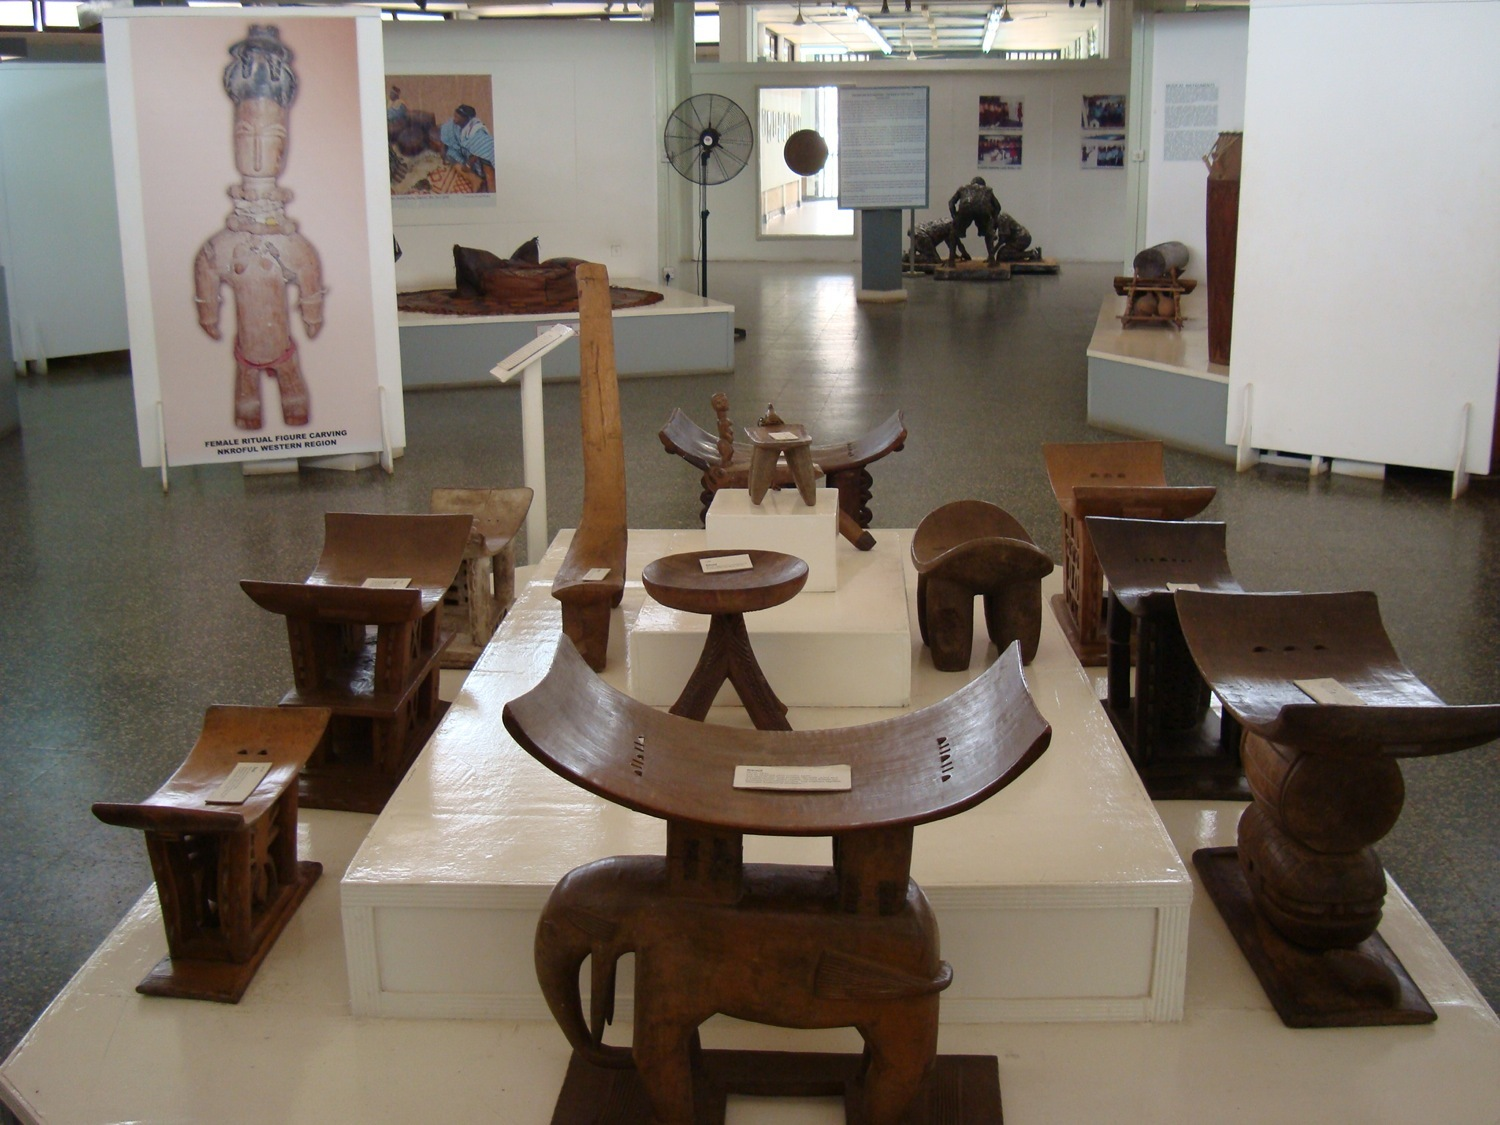 Delve into the past at National Museum of Ghana